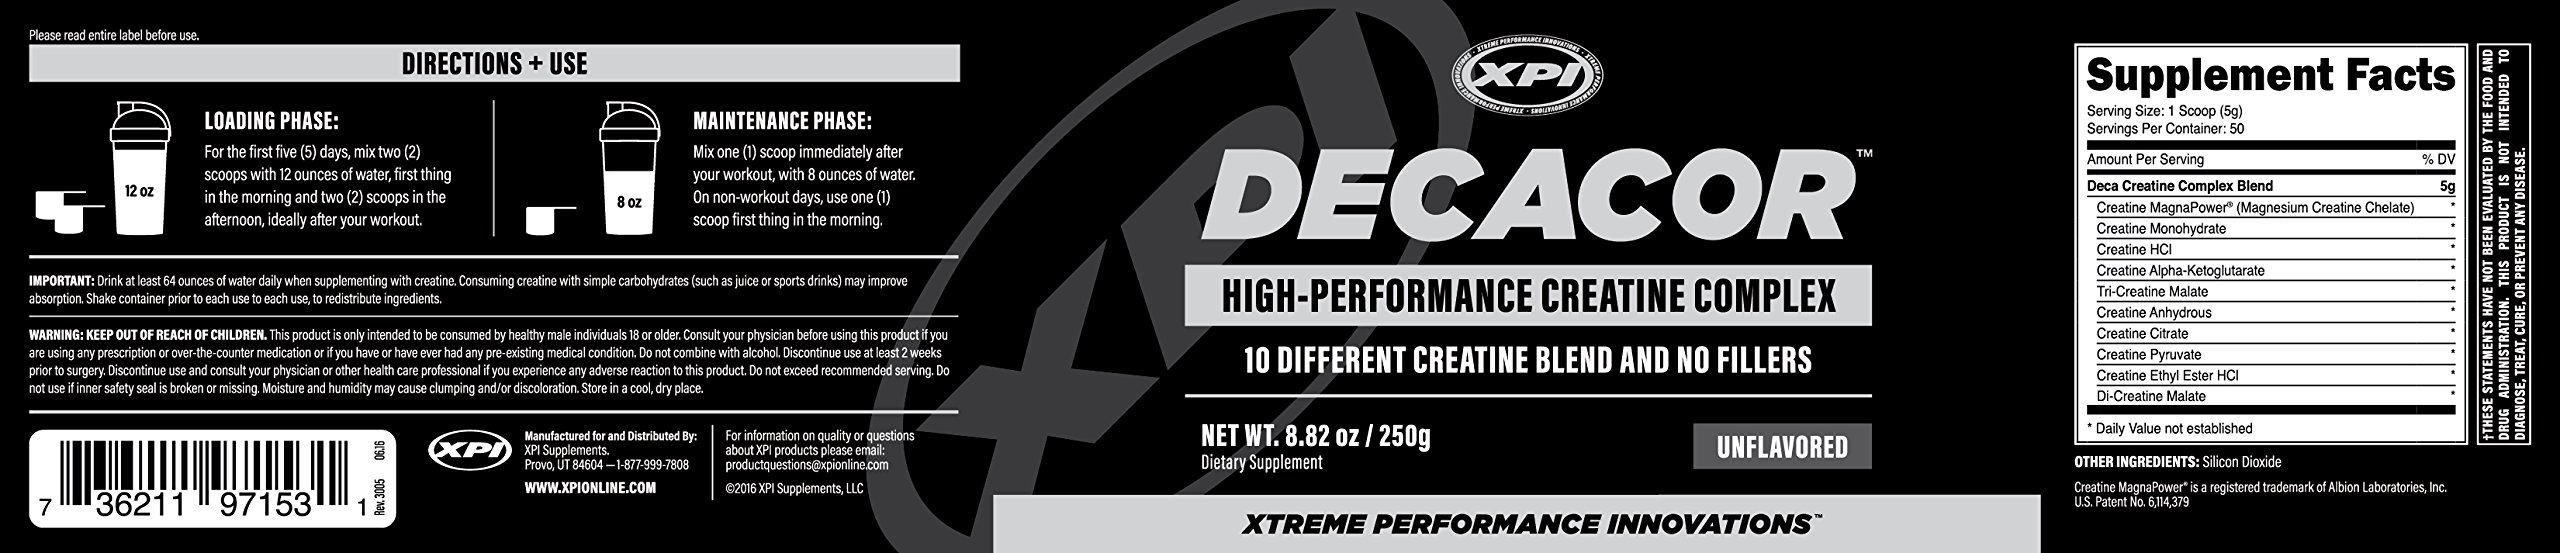 Decacor Creatine (2 Pack) - Best Creatine Powder - 10 Creatine Blend - Top Creatine Supplement - Enhance Muscles, Power and Recovery by XPI Supplements (Image #2)